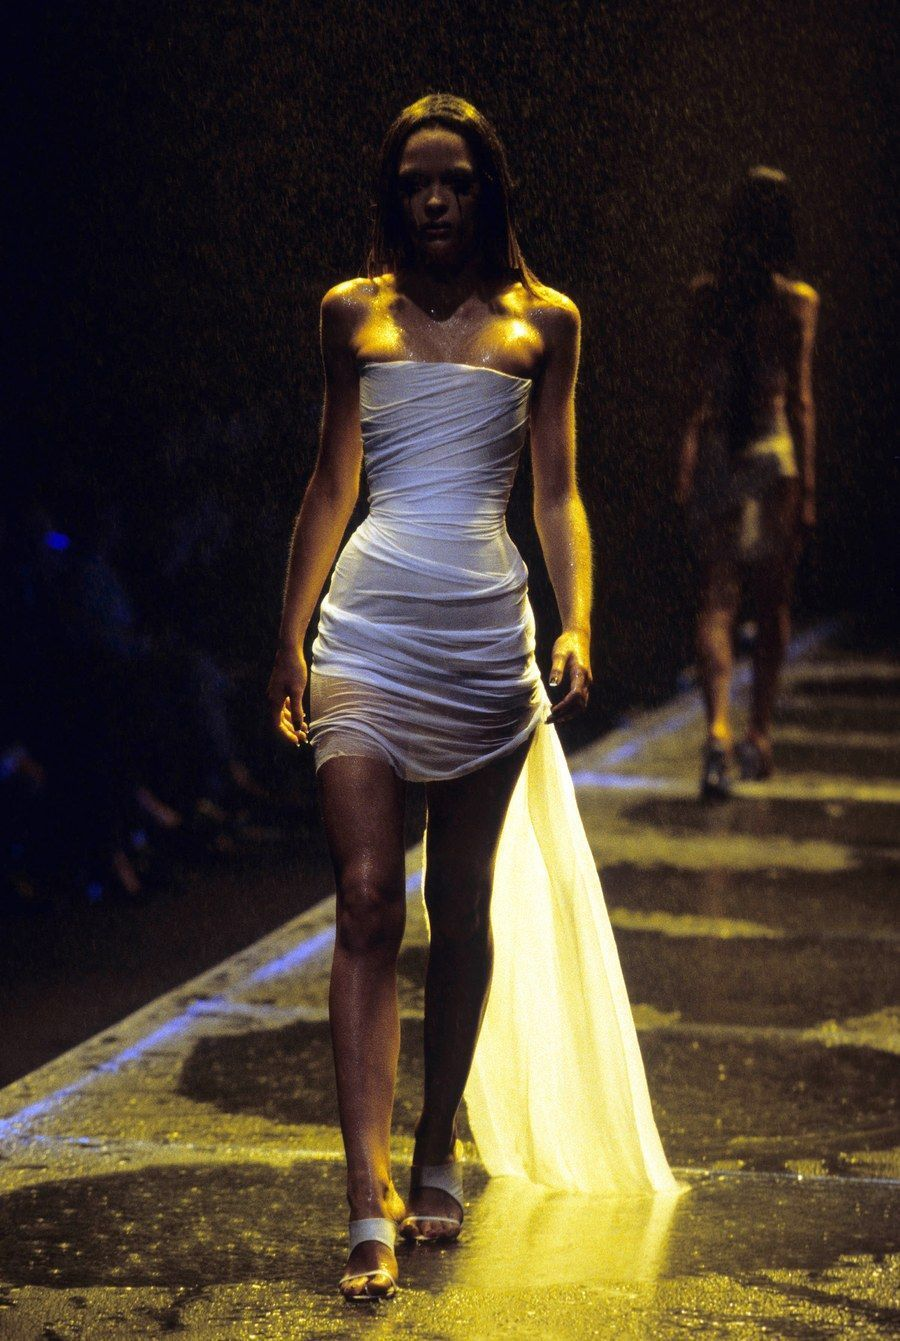 Alexander McQueen Spring 1998 ready-to-wear collection, runway looks, beauty ... -  Alexander McQueen Spring 1998 ready-to-wear collection, runway looks, beauty, models and reviews. # - #Alexander #beauty #Collection #McQueen #ReadytoWear #Runway #RunwayFashion2020 #RunwayFashionaesthetic #RunwayFashionalexandermcqueen #RunwayFashioncasual #RunwayFashionchanel #RunwayFashiondior #RunwayFashiondolce&gabbana #RunwayFashionversace #RunwayFashionwomen #Spring